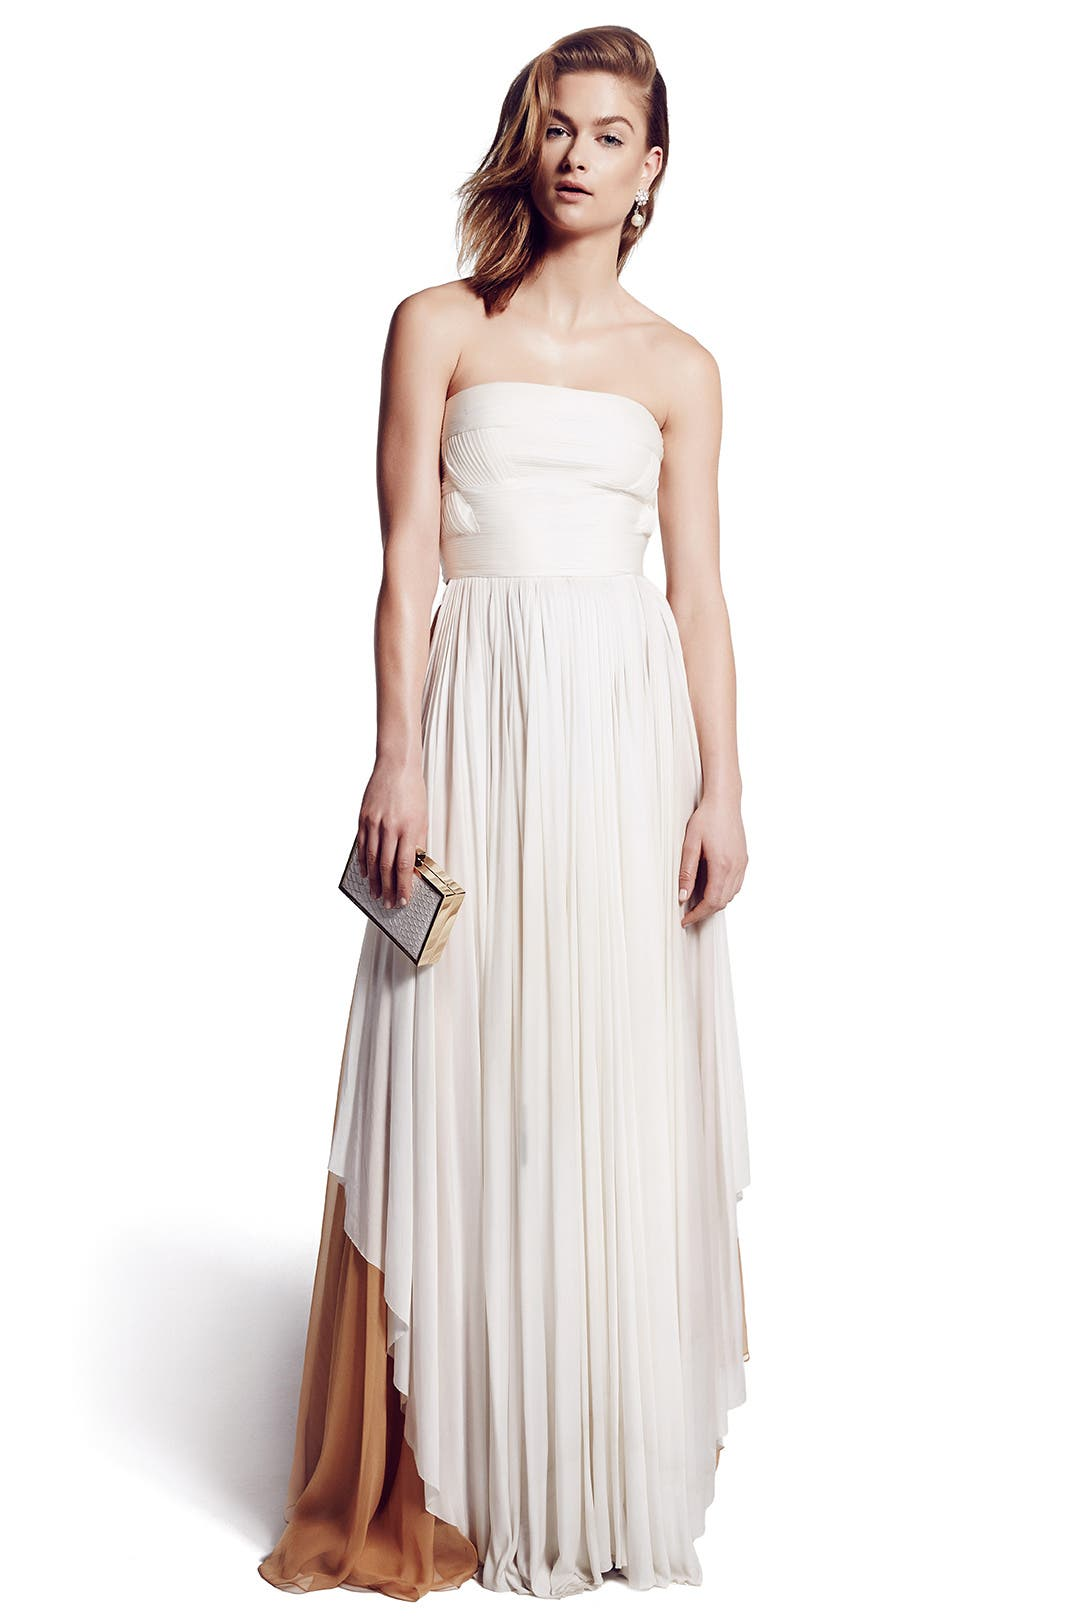 Athene Gown by Vionnet for $600 | Rent the Runway